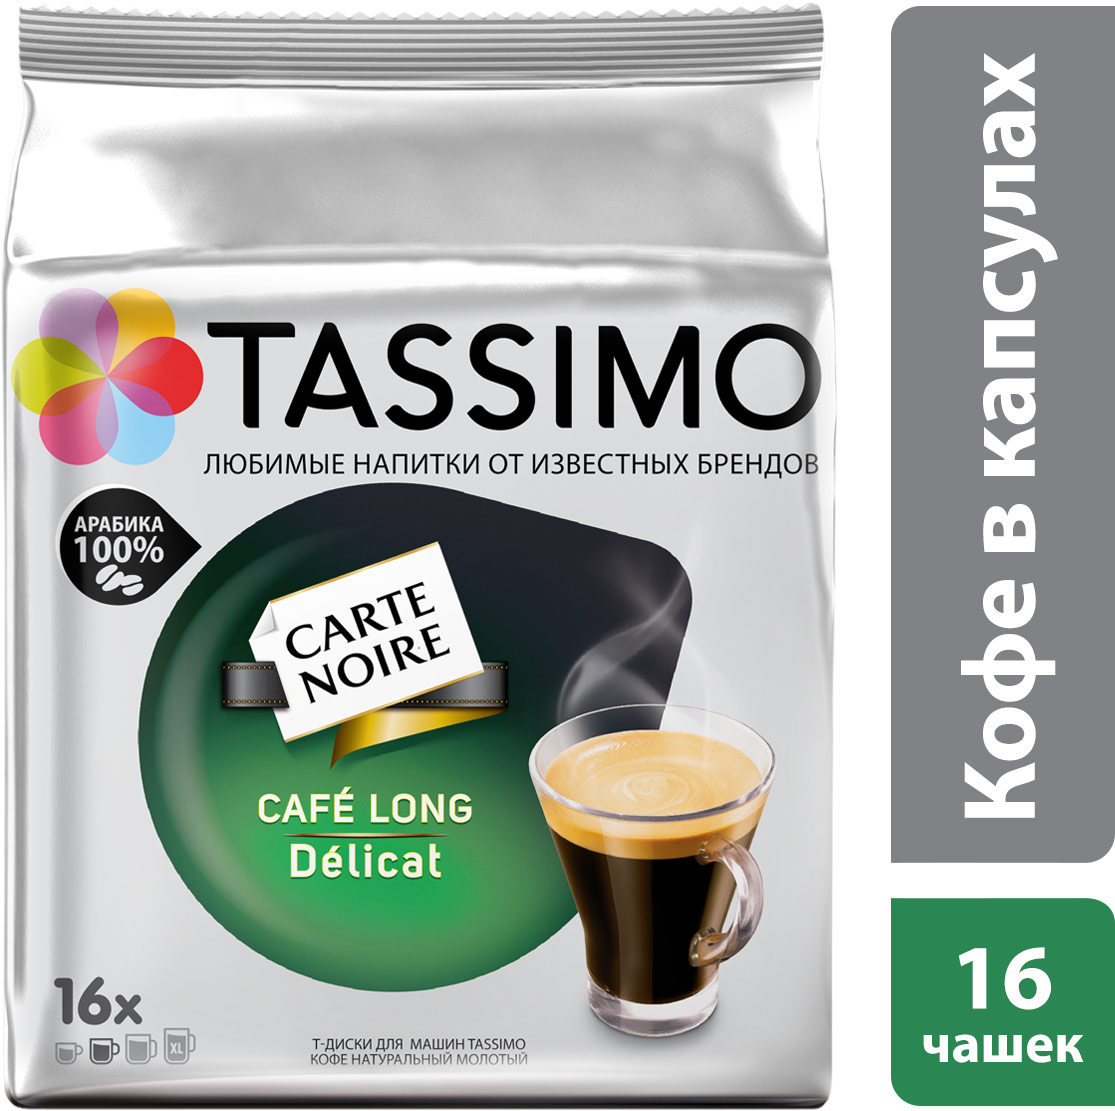 Tassimo Carte Noire Cafe Long Delicat кофе в капсулах, 16 шт капсулы tassimo latte macchiato caramel